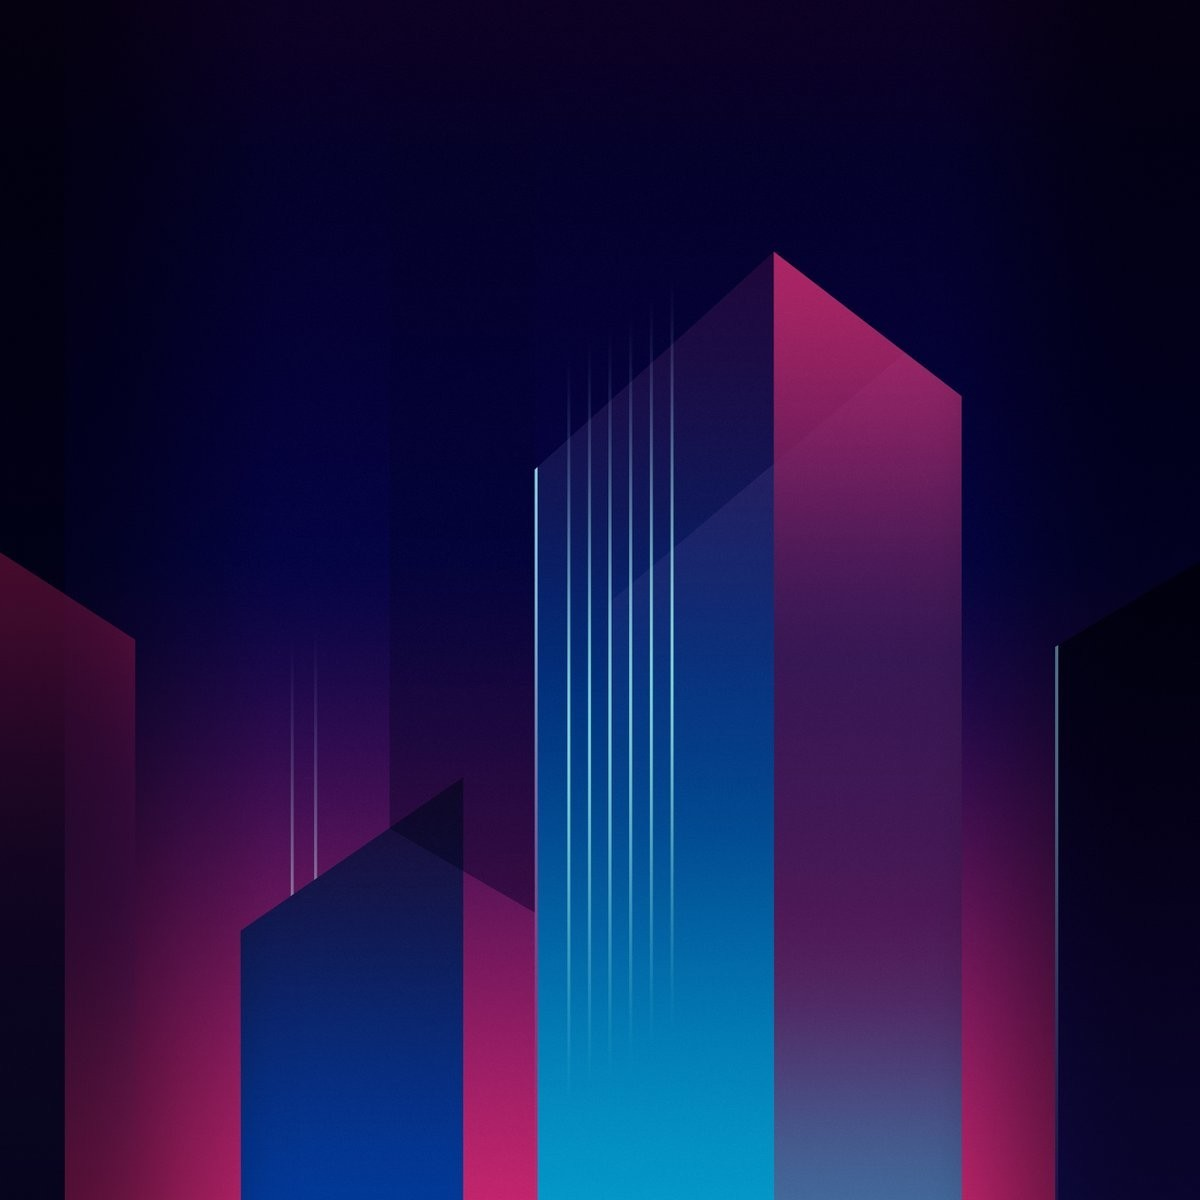 htc u11+ wallpaper